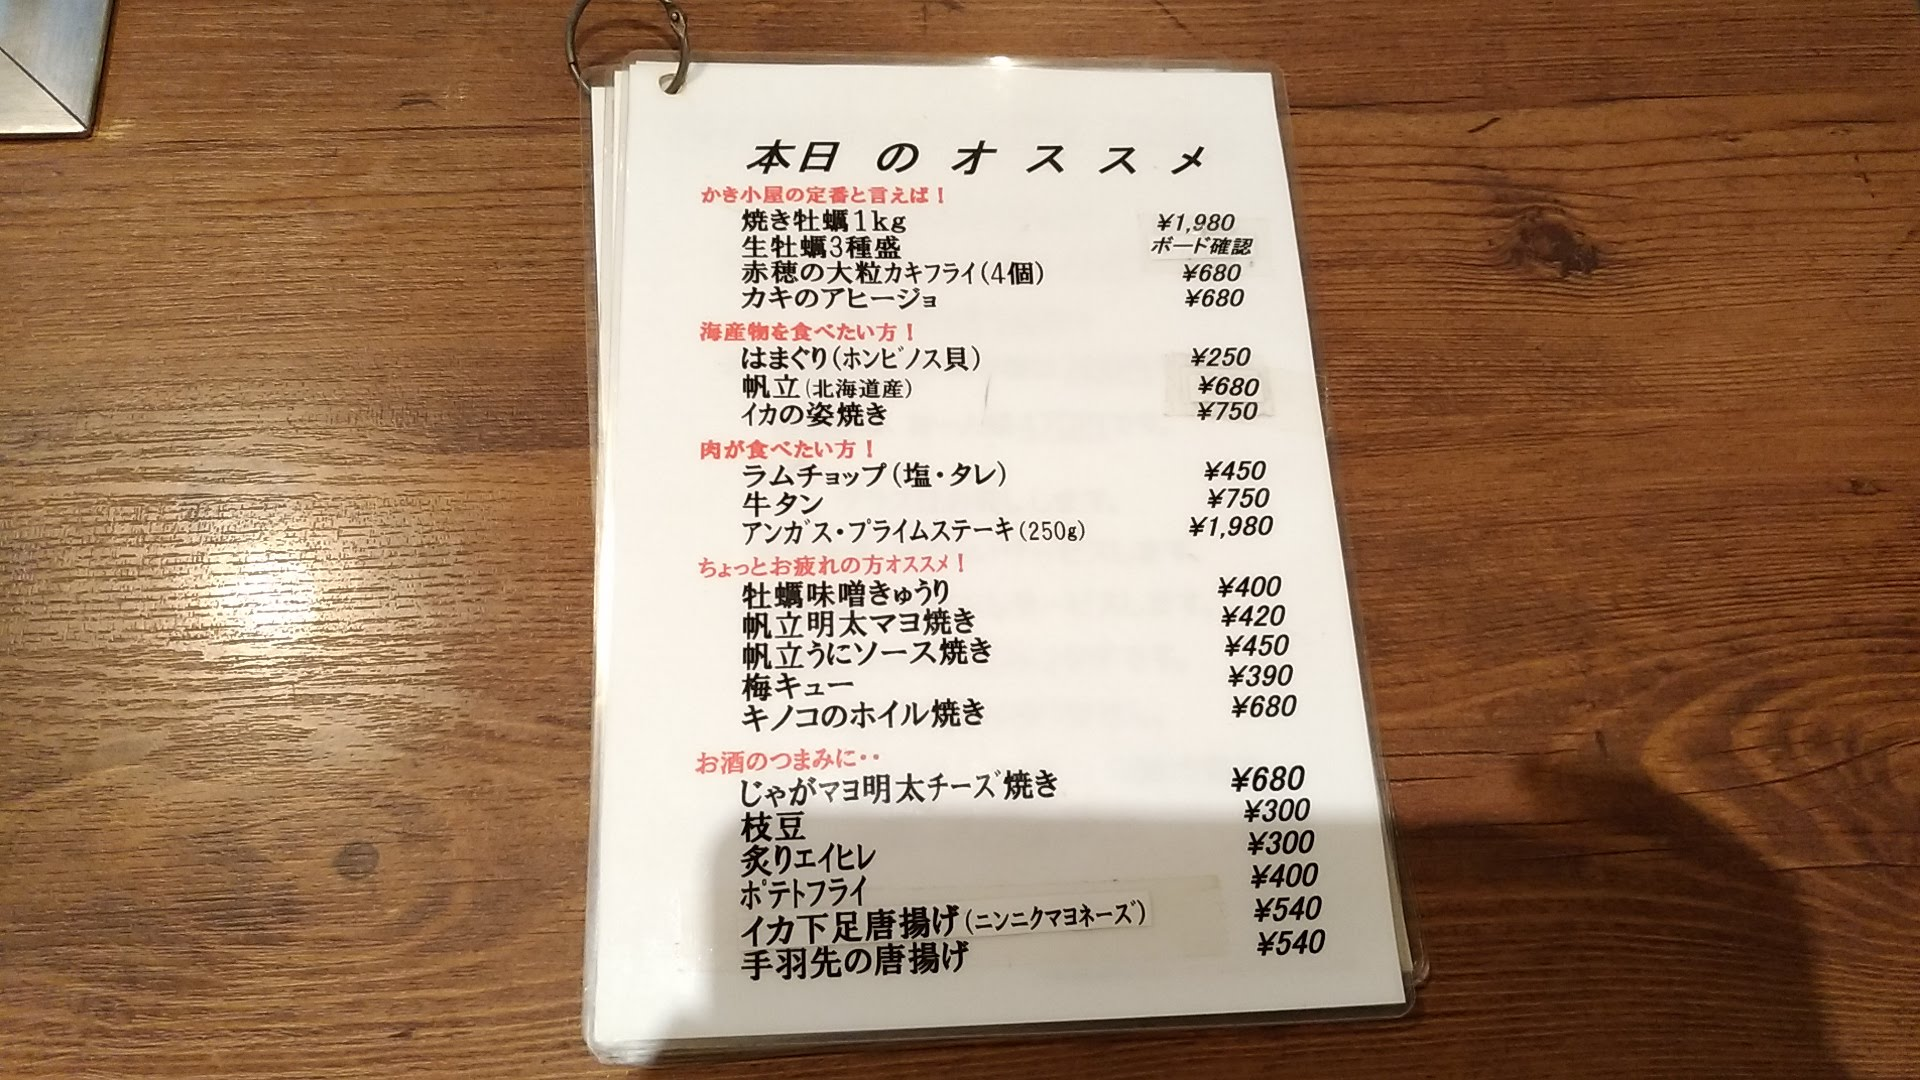 the Oyster Shack recommended food menu